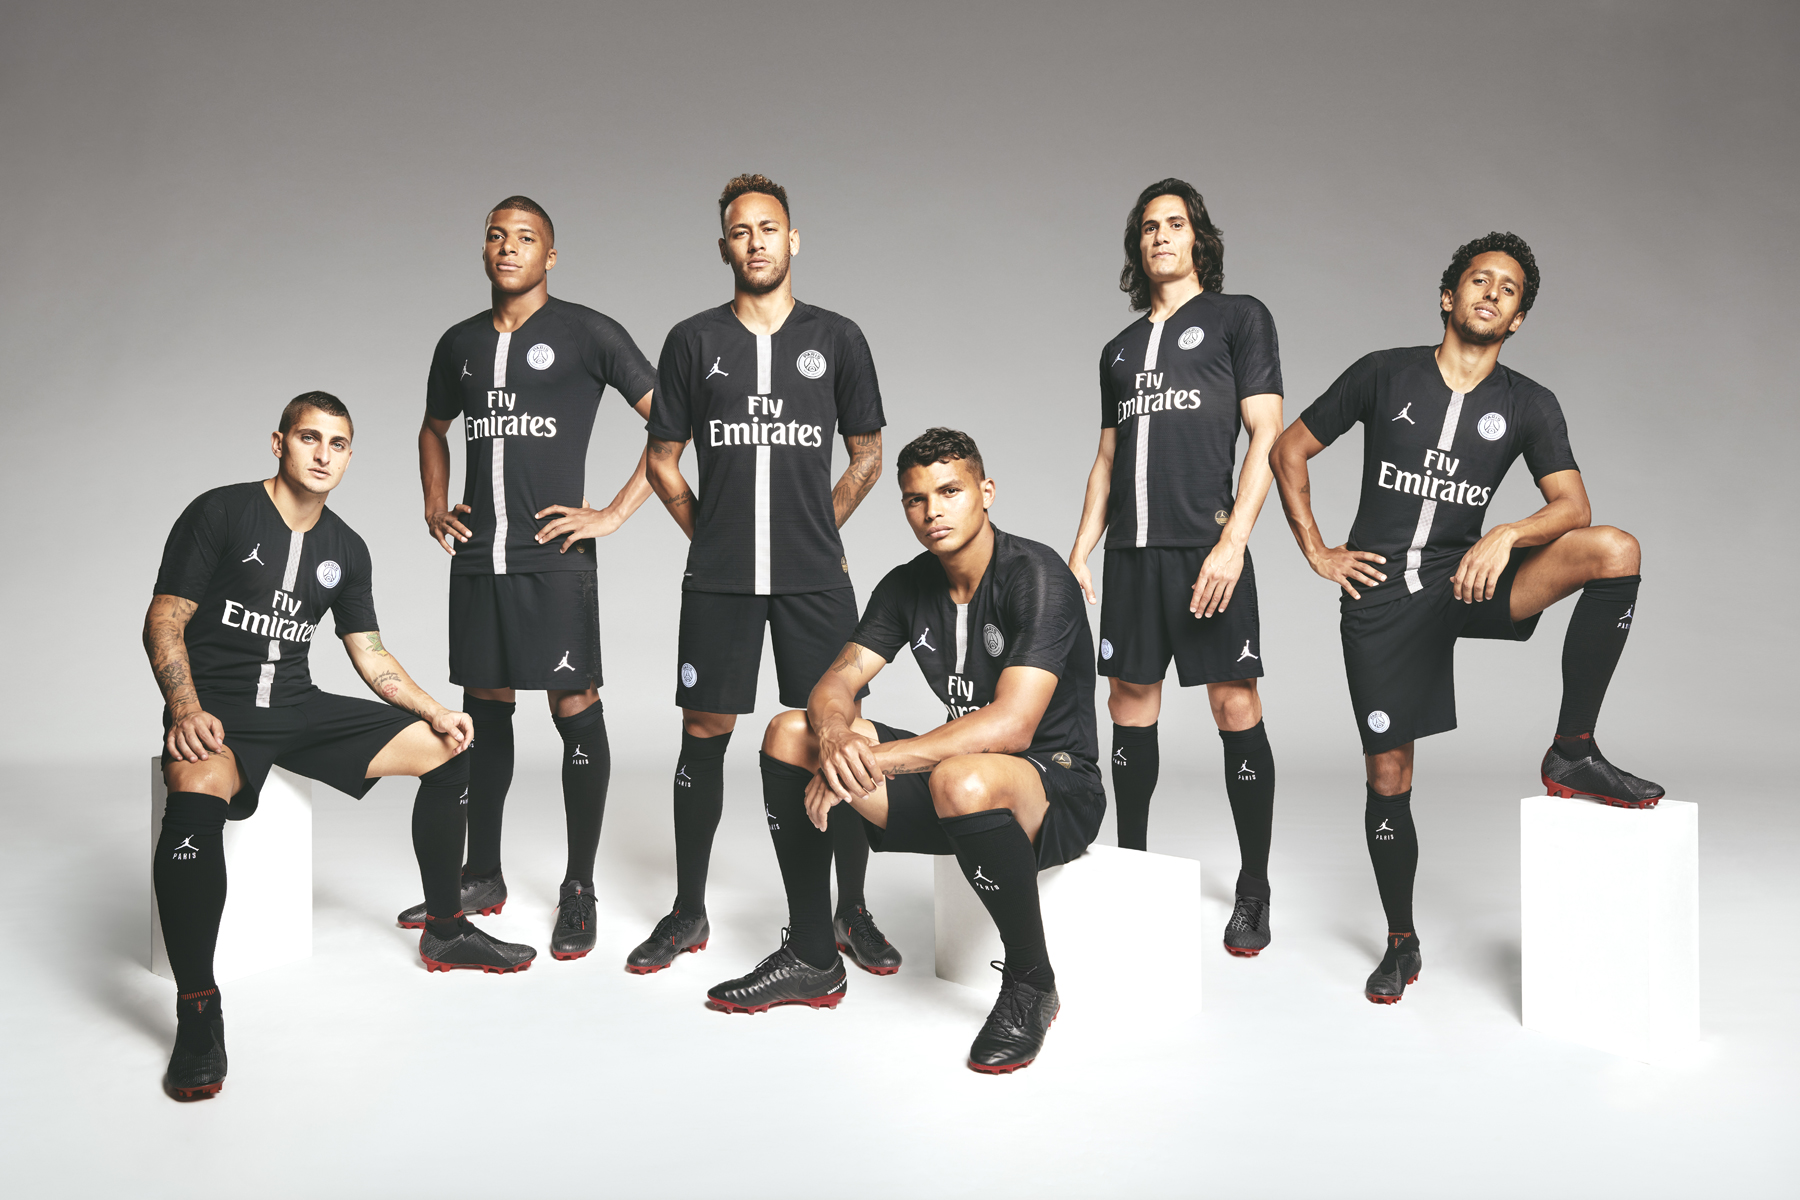 https en psg fr teams first team content paris saint germain and jordan brand team up